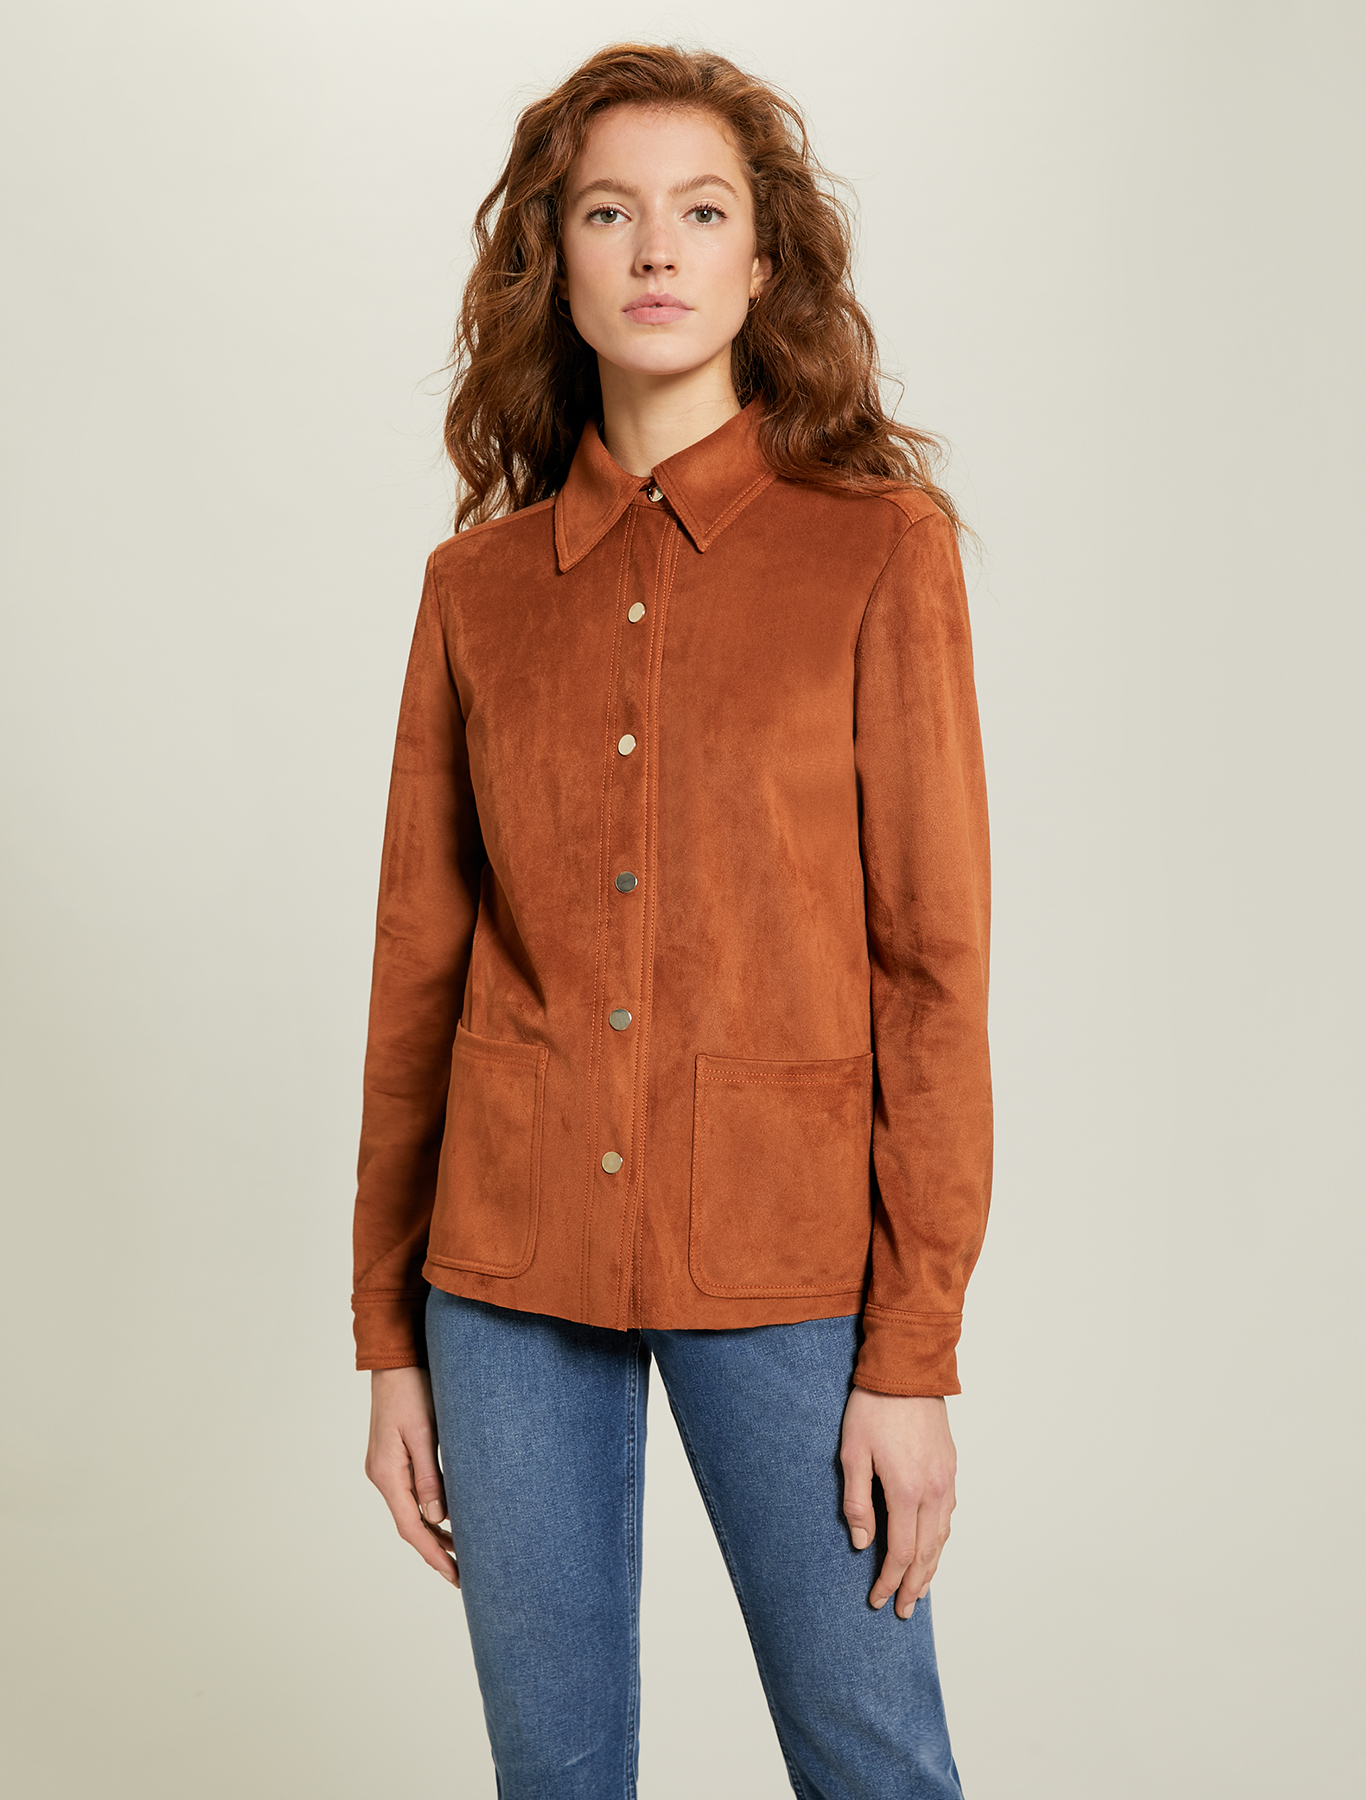 Jersey shirt jacket - brown - pennyblack